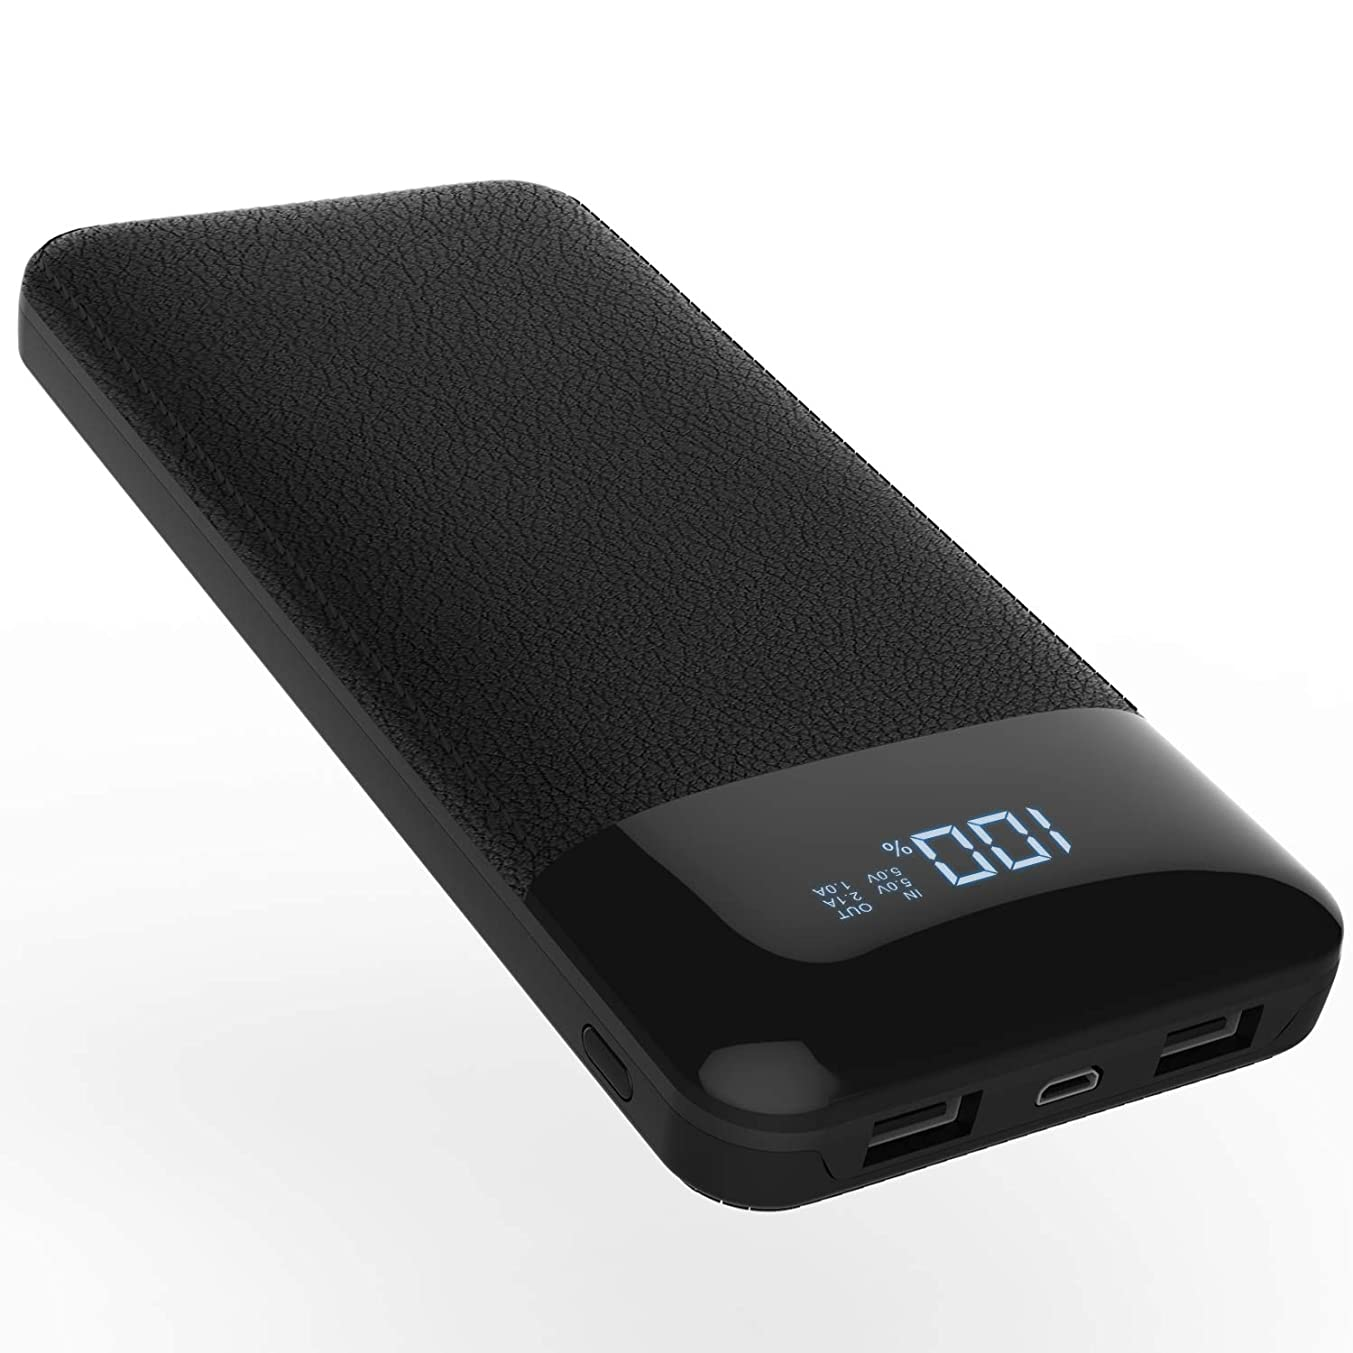 Todamay Power Bank 24000mAh Portable Charger External Battery with LCD Display, 2.1A Input Port and 2 Charging Ports for Smartphone and Other Devices, Black